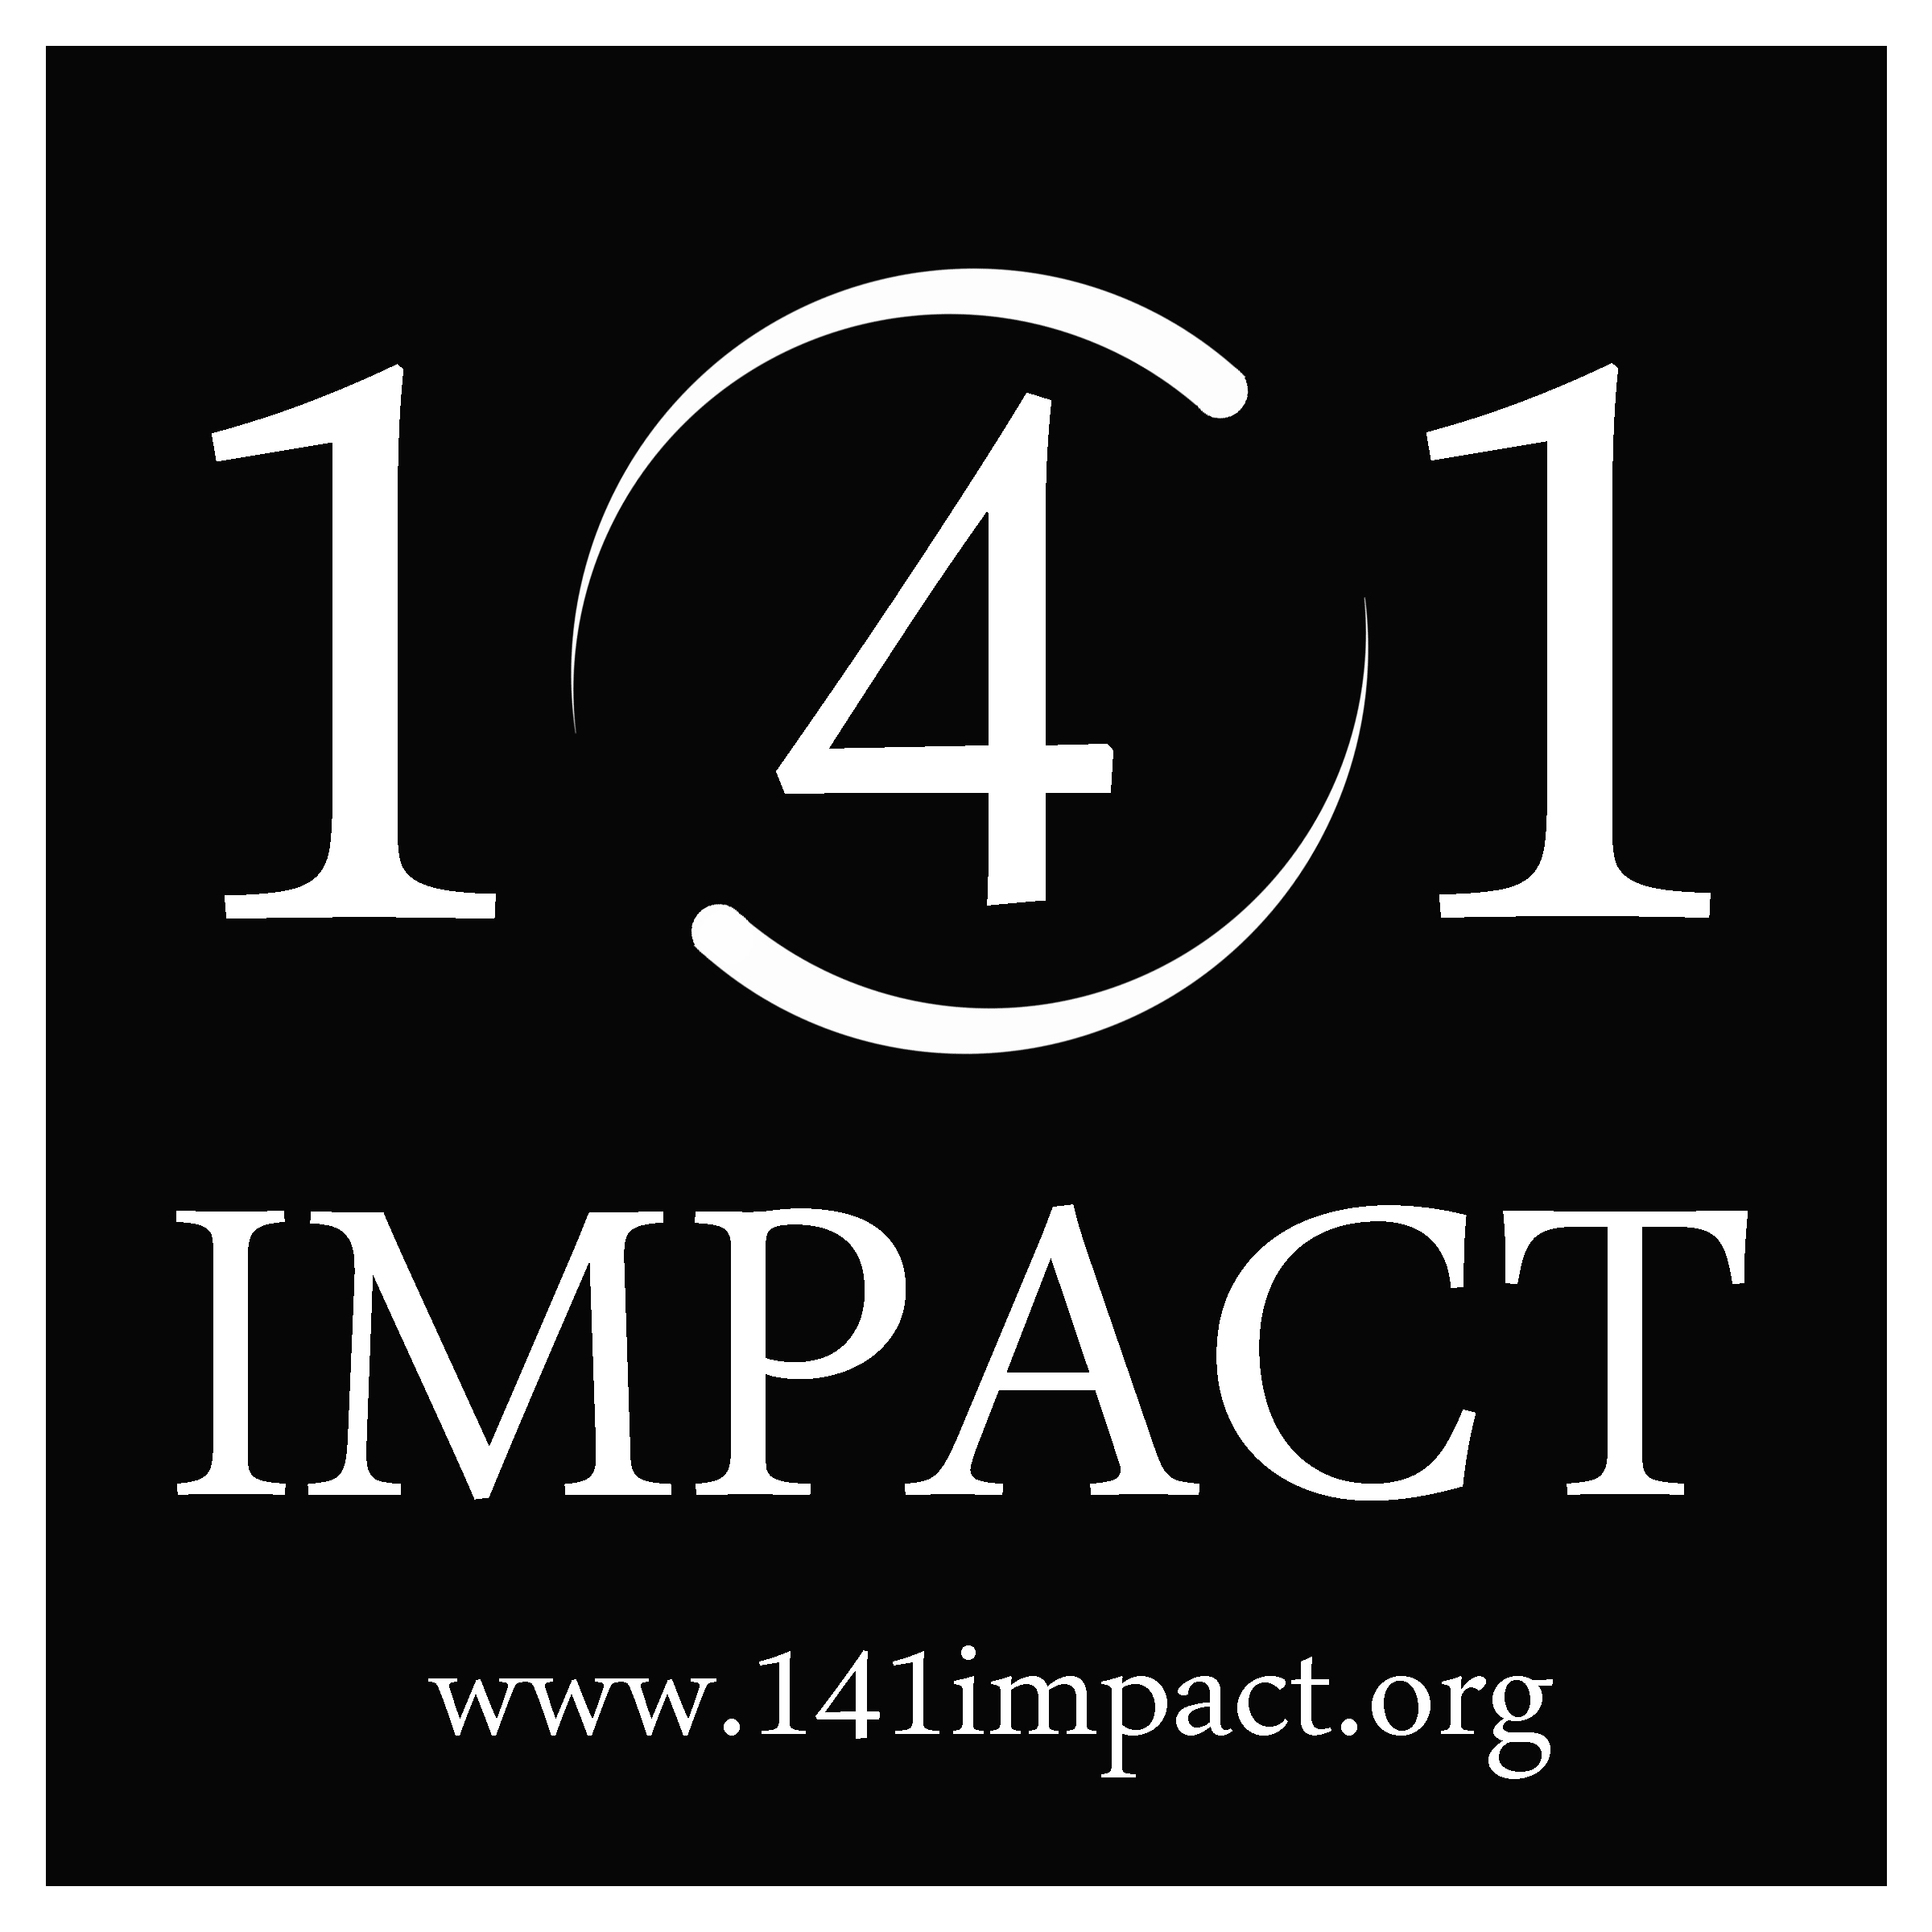 New_141_Impact_LOGO_block_copy.jpg